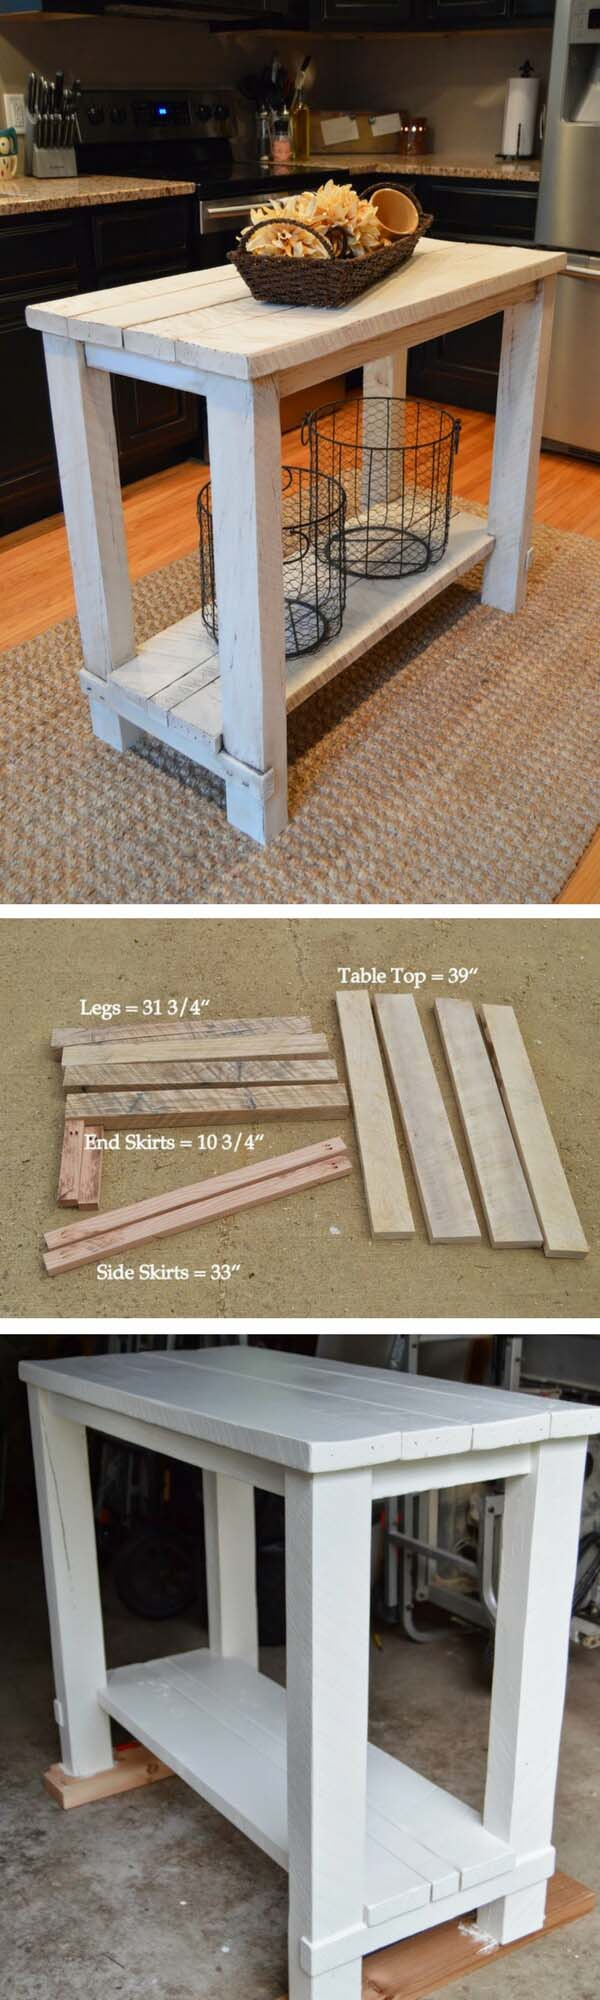 Small Kitchen Island is Rustic and Simple to Make #diy #ktichenisland #decorhomeideas